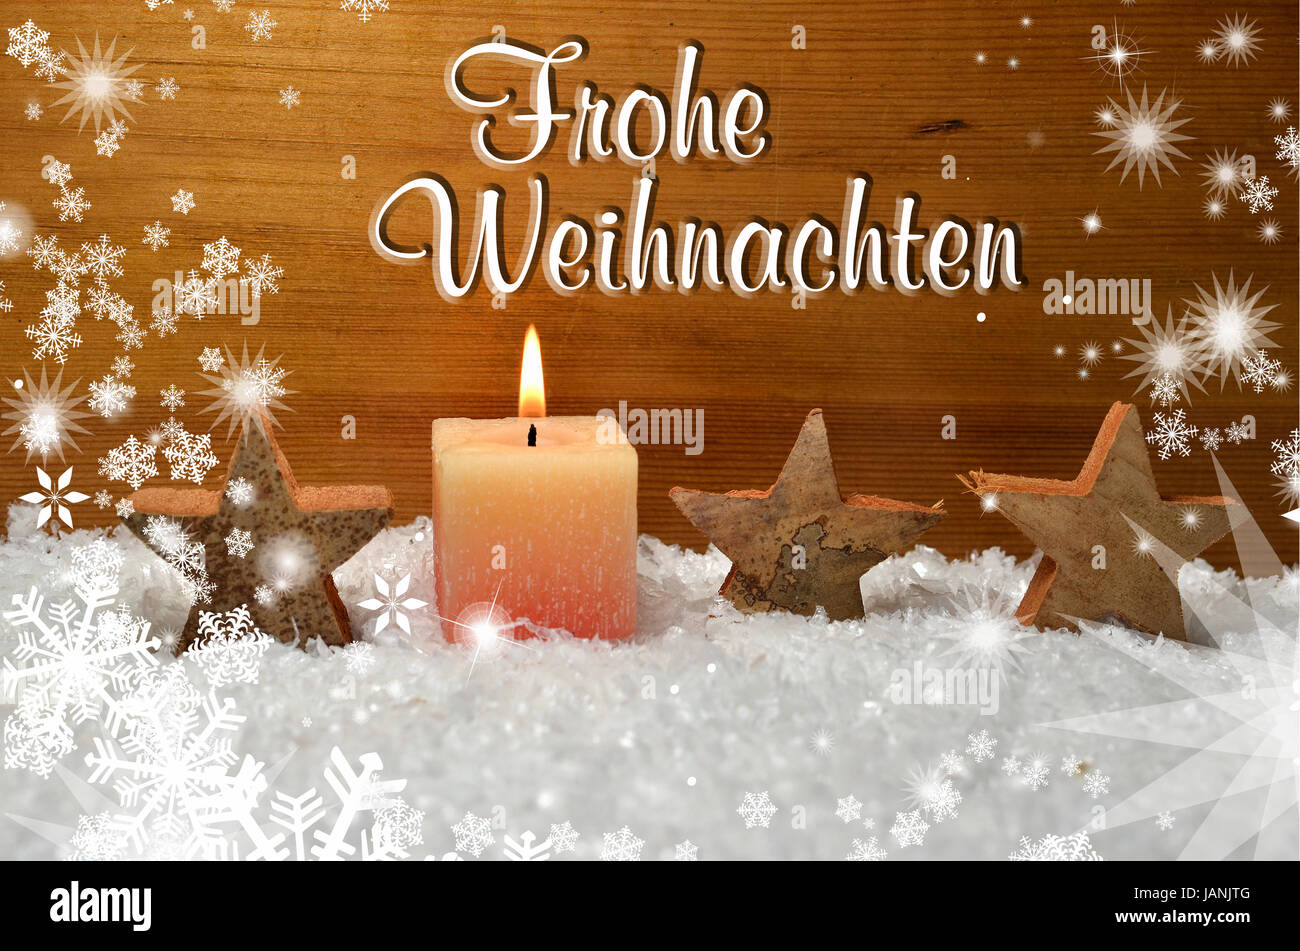 Frohe Weihnachten Dekoration Advent Stock Photo Royalty